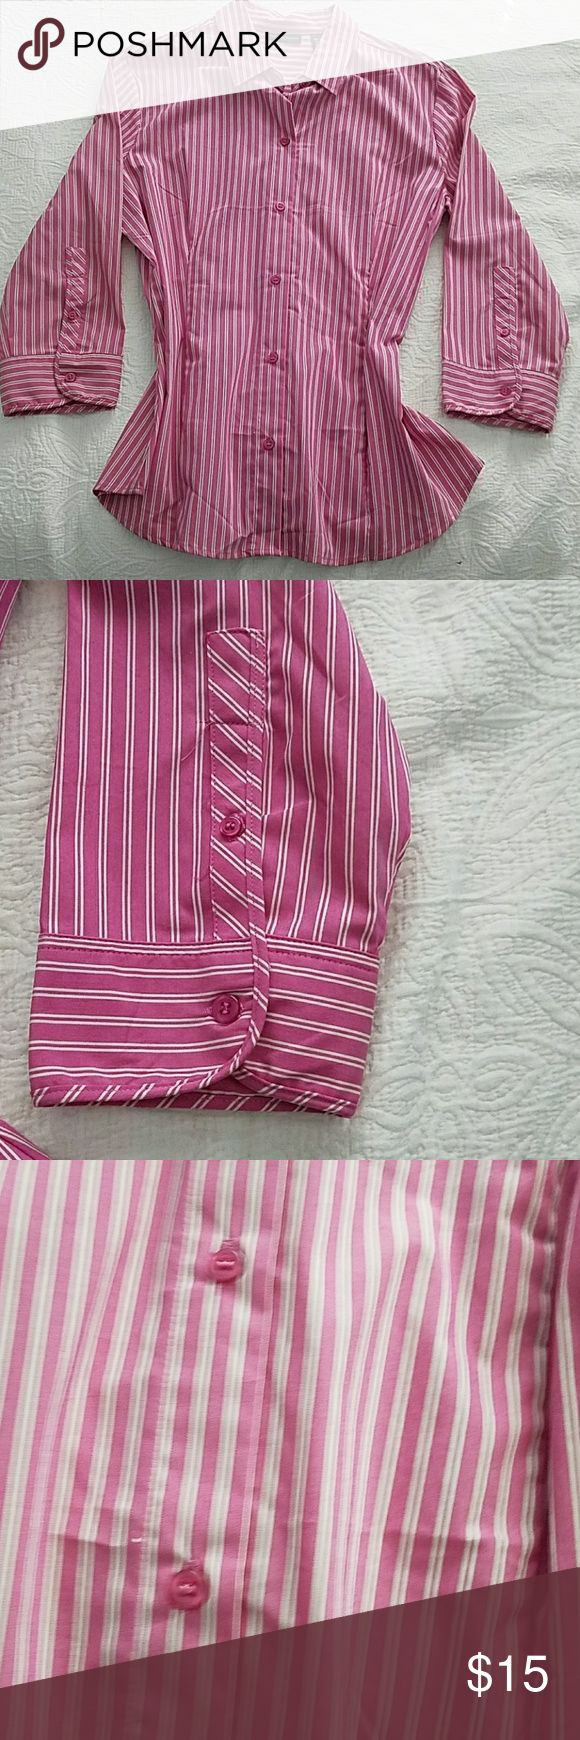 👜 NYCO Button Down Shirt XL Perfect for office or with jeans for casual look Hot pink shirt w/ white stripes New York & Company Tops Button Down Shirts